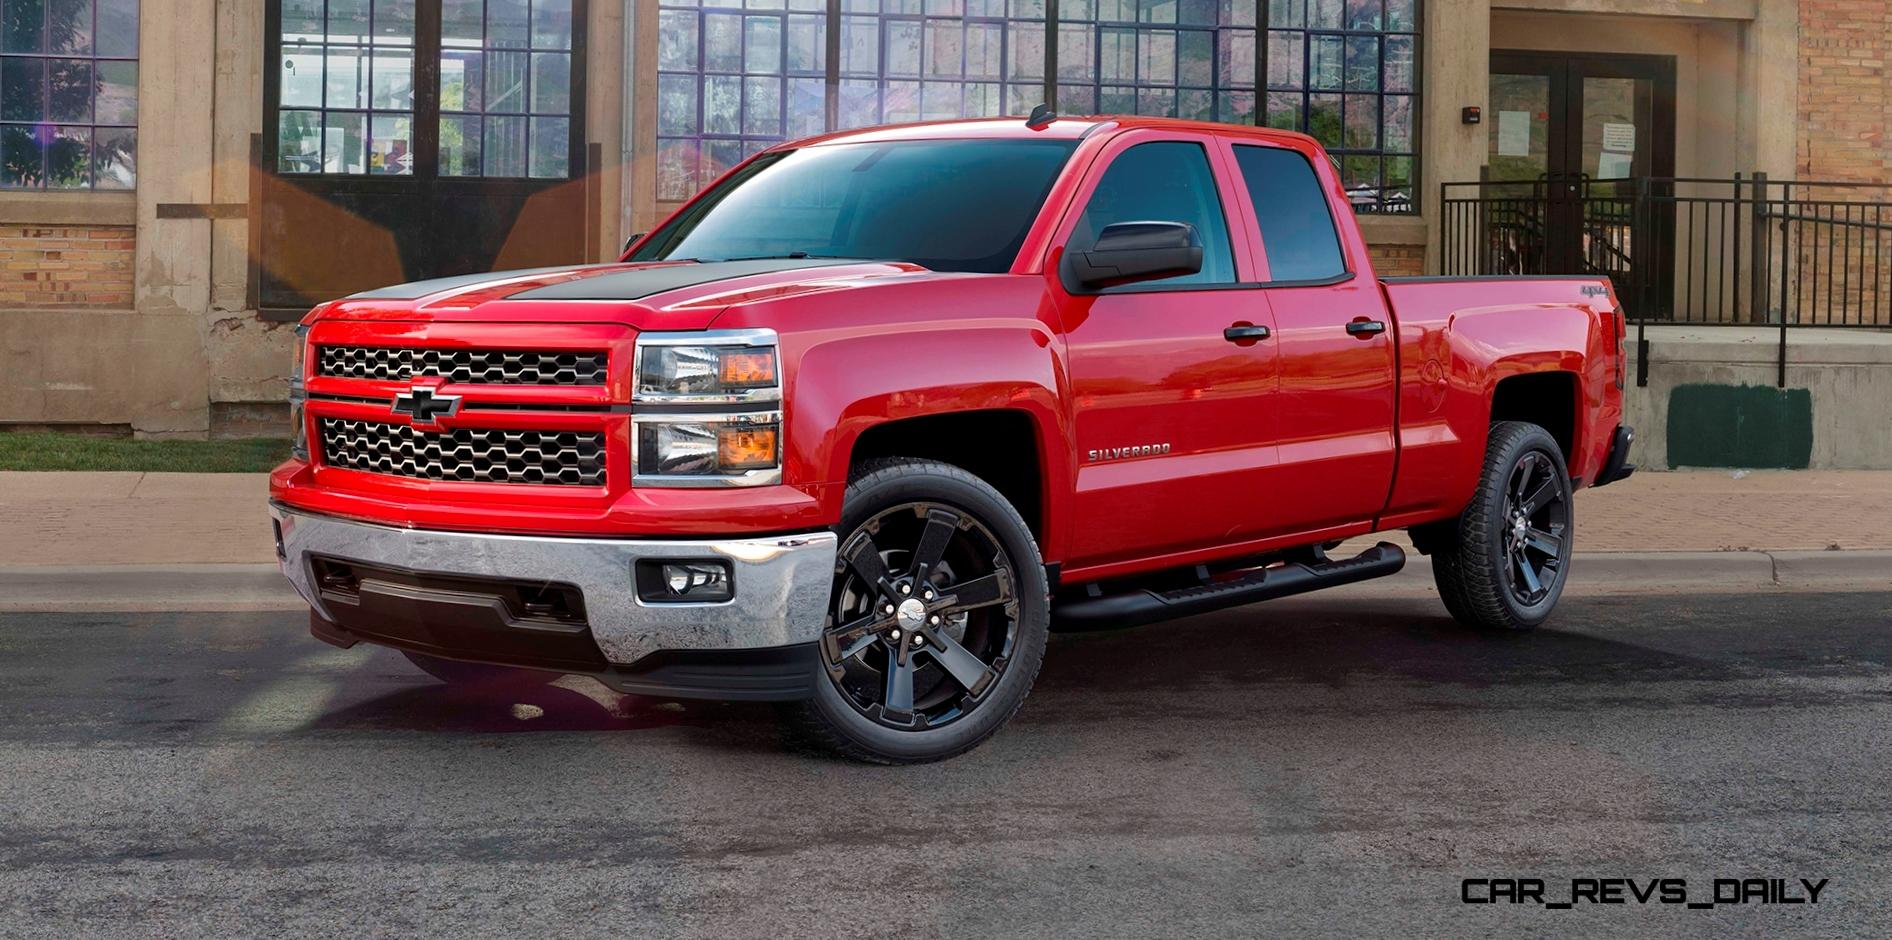 2015 chevrolet silverado 1500 crew cab rally edition adds gloss black 22 inch wheels and black. Black Bedroom Furniture Sets. Home Design Ideas